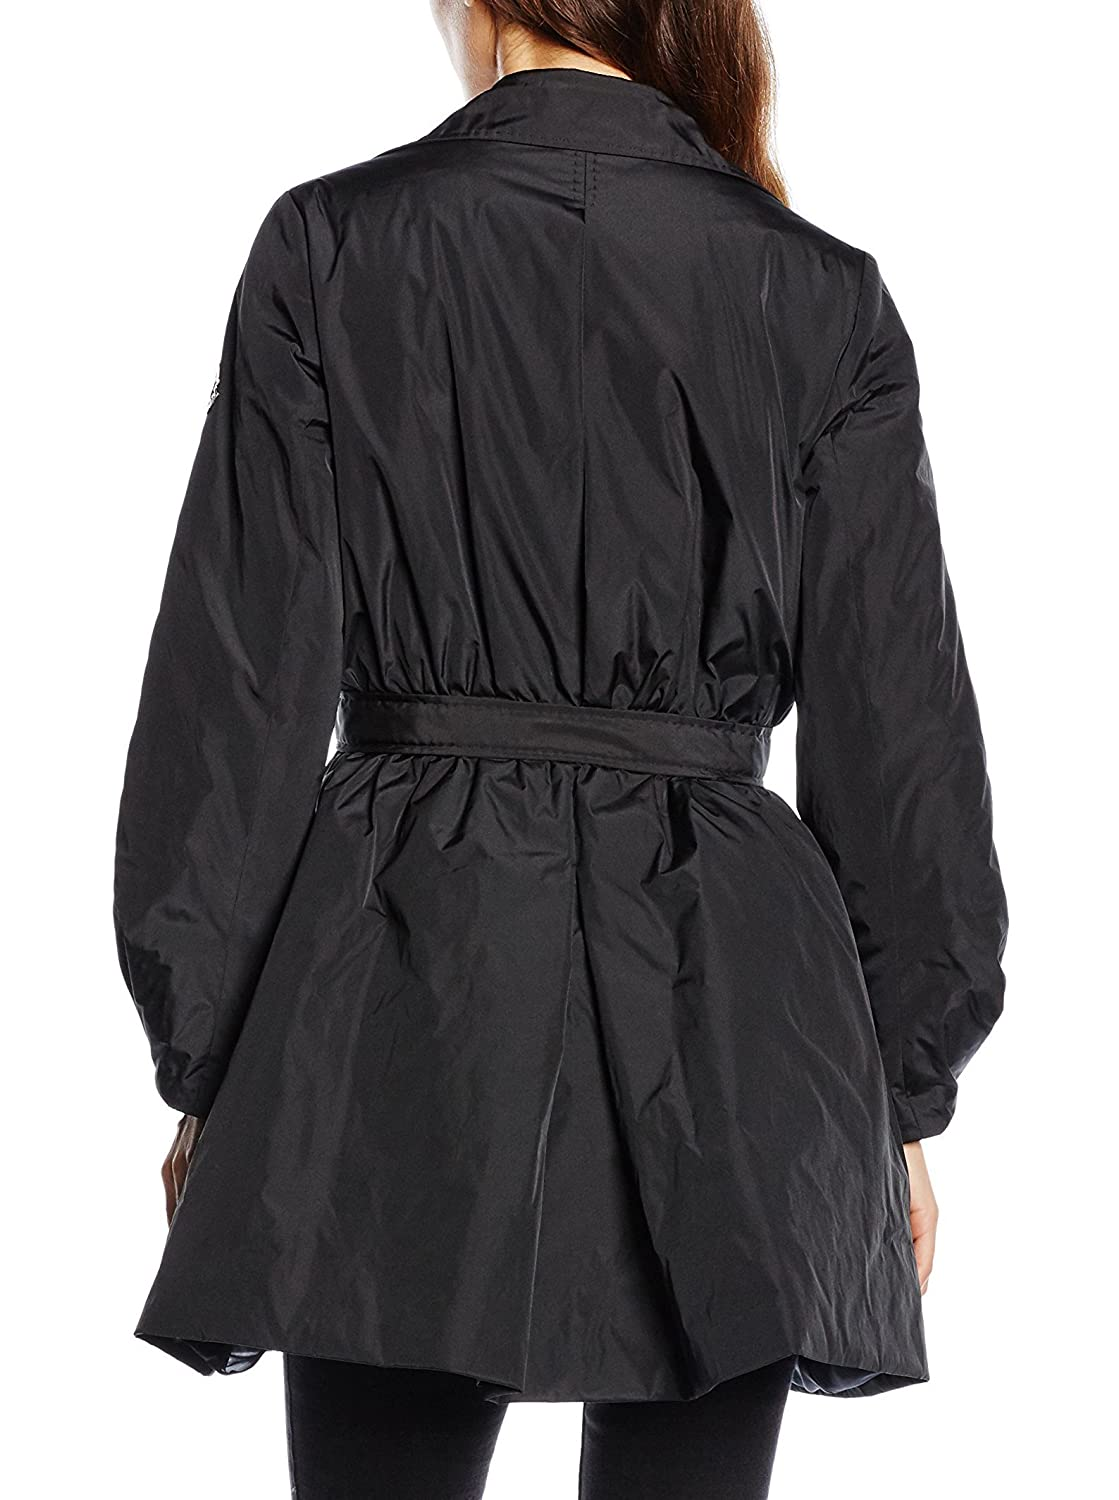 Moncler Piumino Lungo Eloise Nero IT 42 (FR 1): Amazon.it